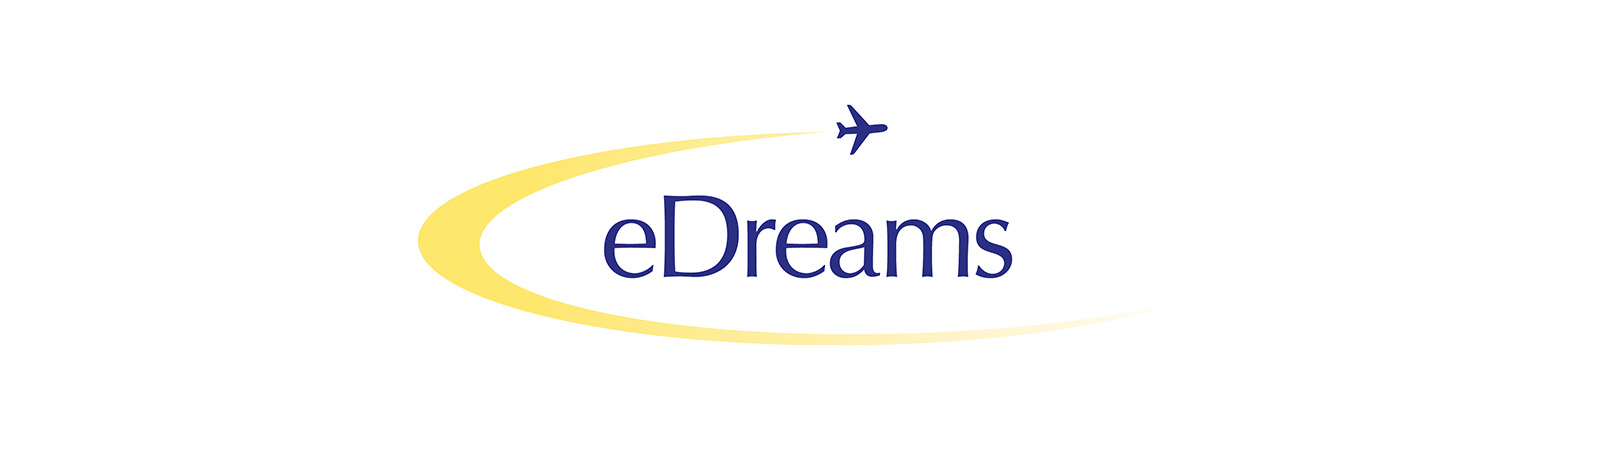 eDreams Logo Image